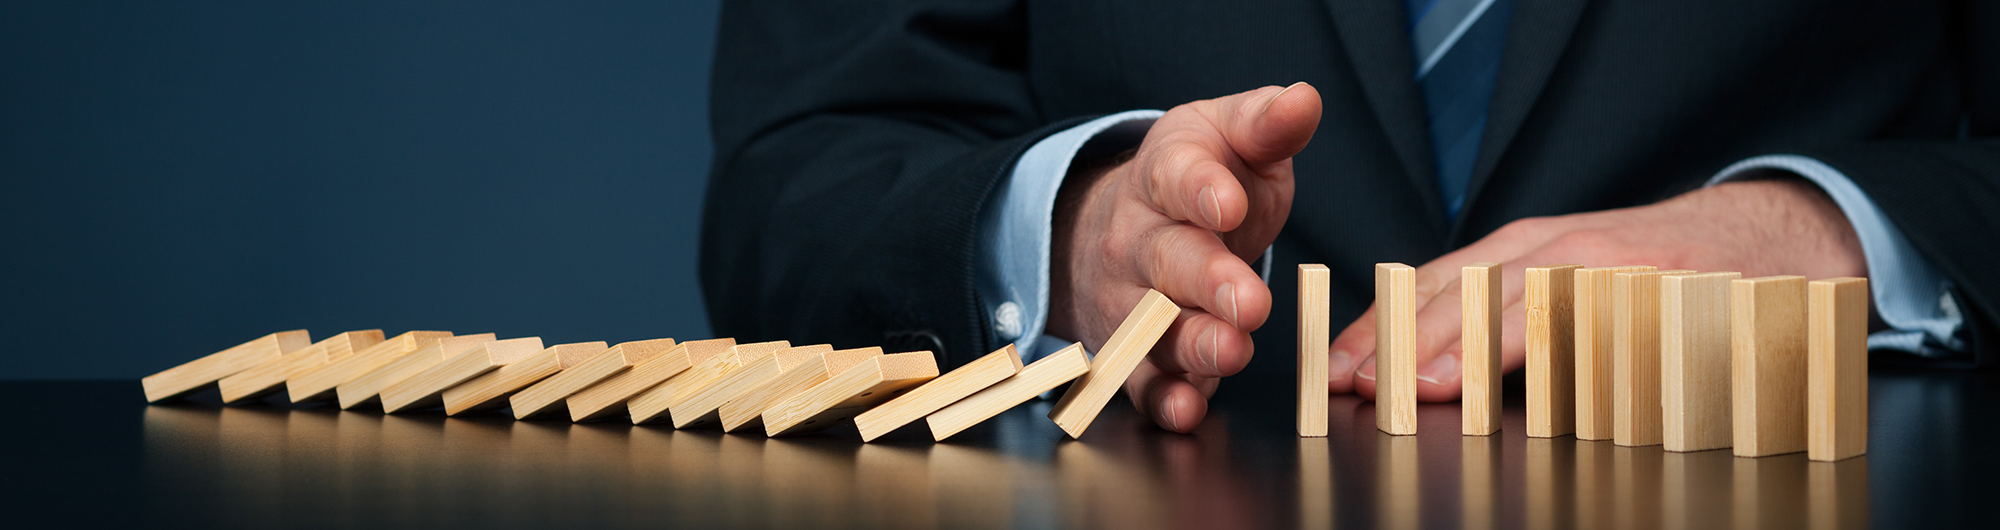 dominoes falling over to suggest risk